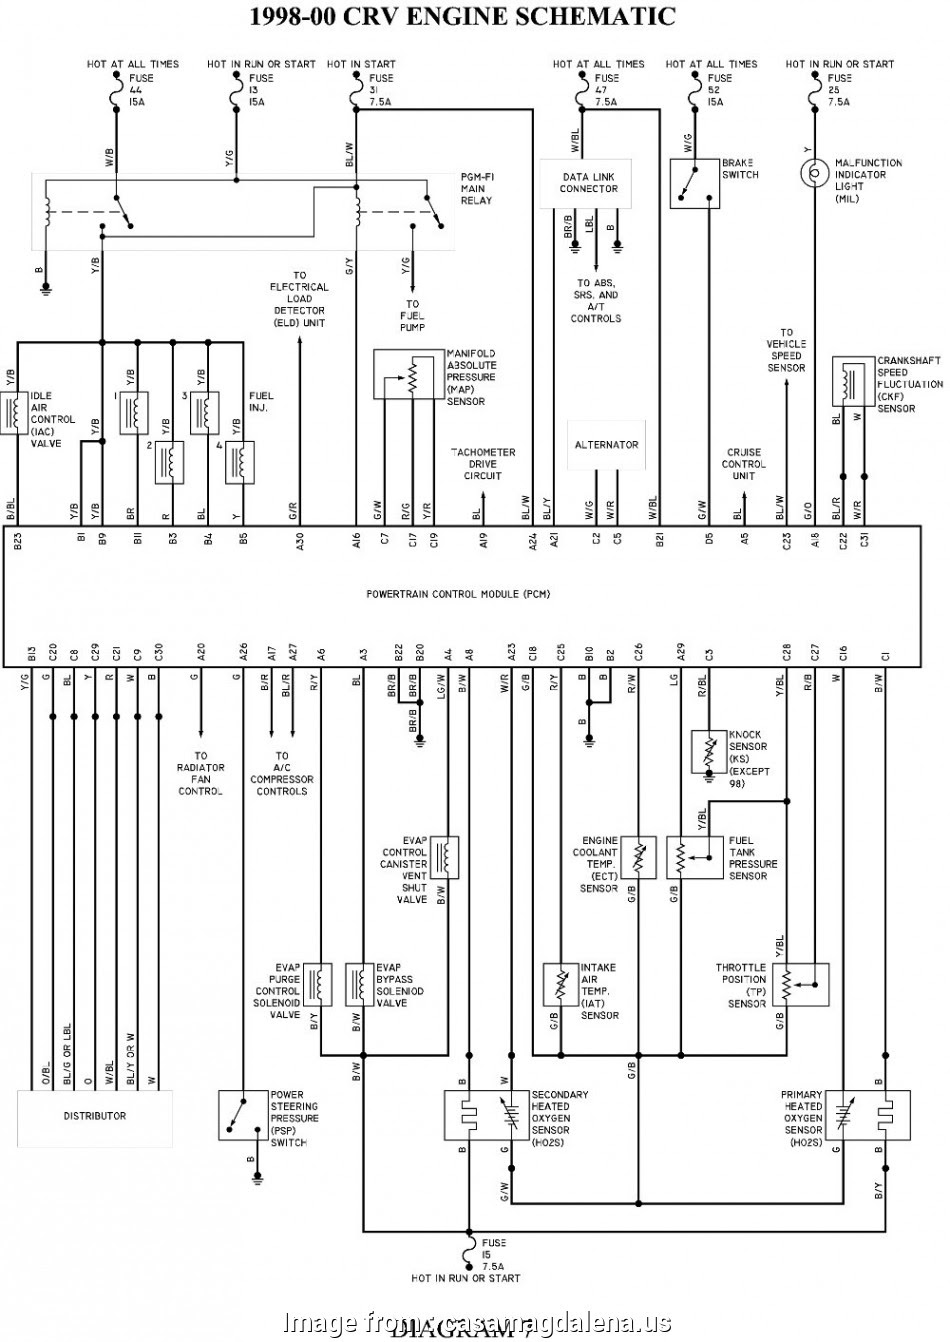 2010 Honda Civic Wiring Diagram 1975 Mgb Wiring Schematic Wiring Diagram Schematics